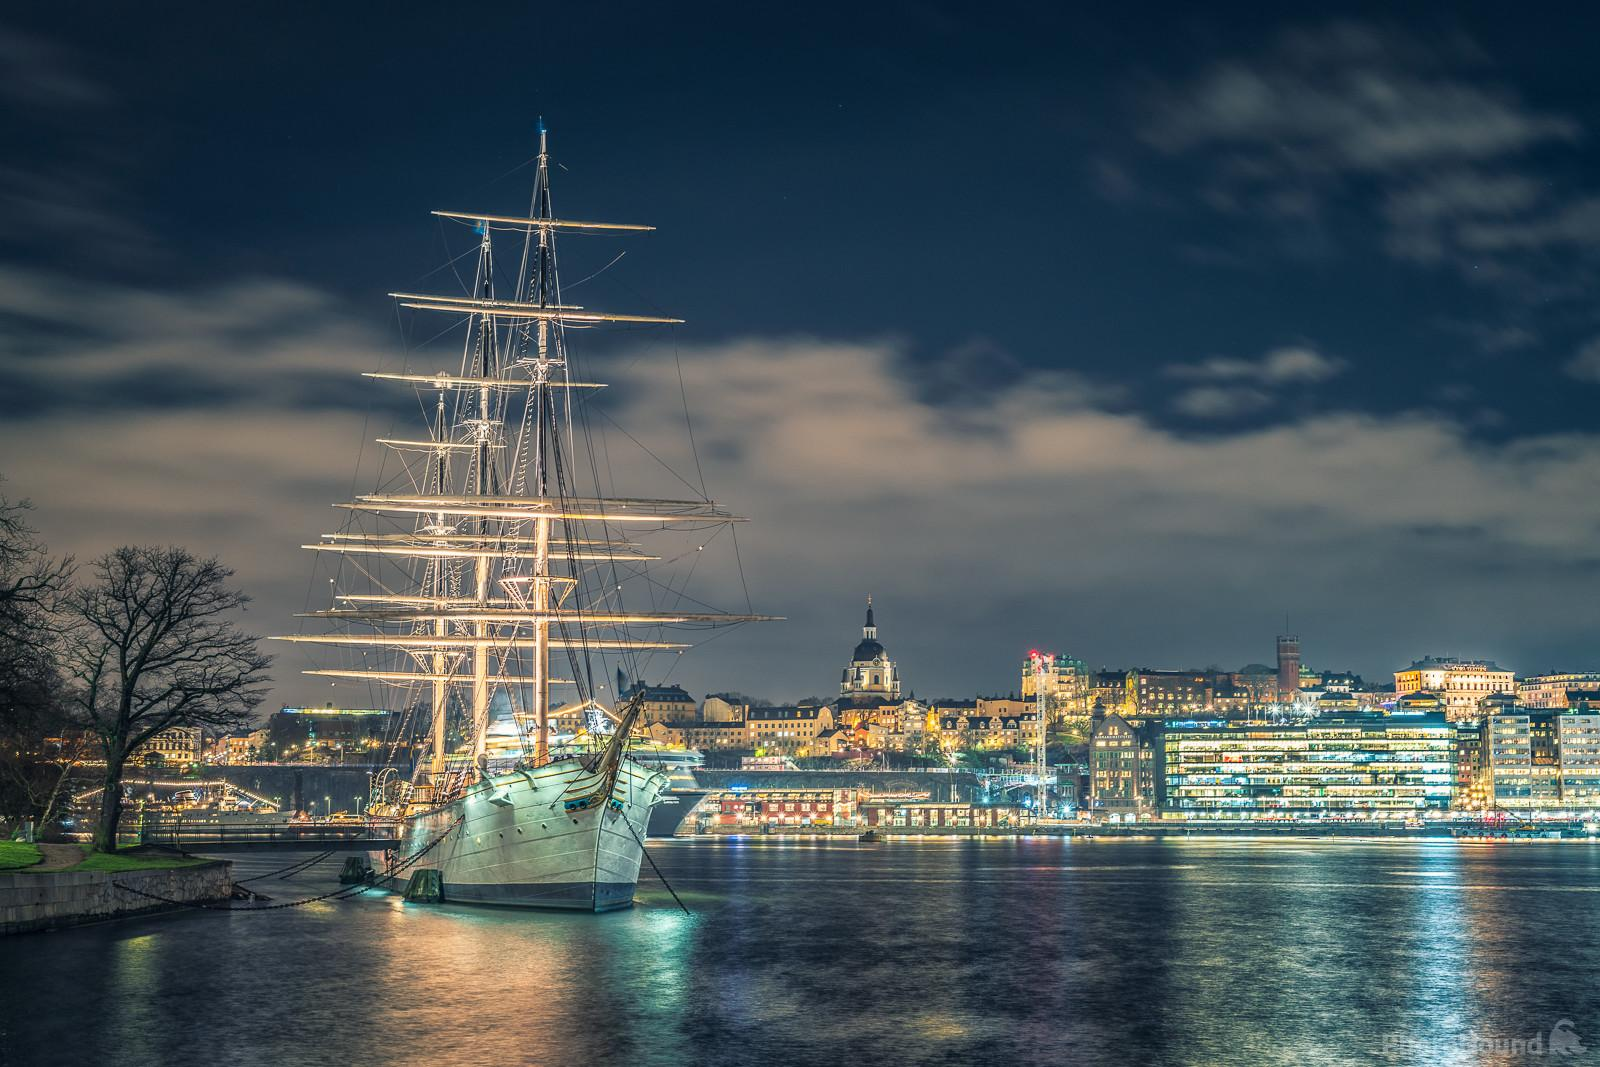 Night time view of the ship